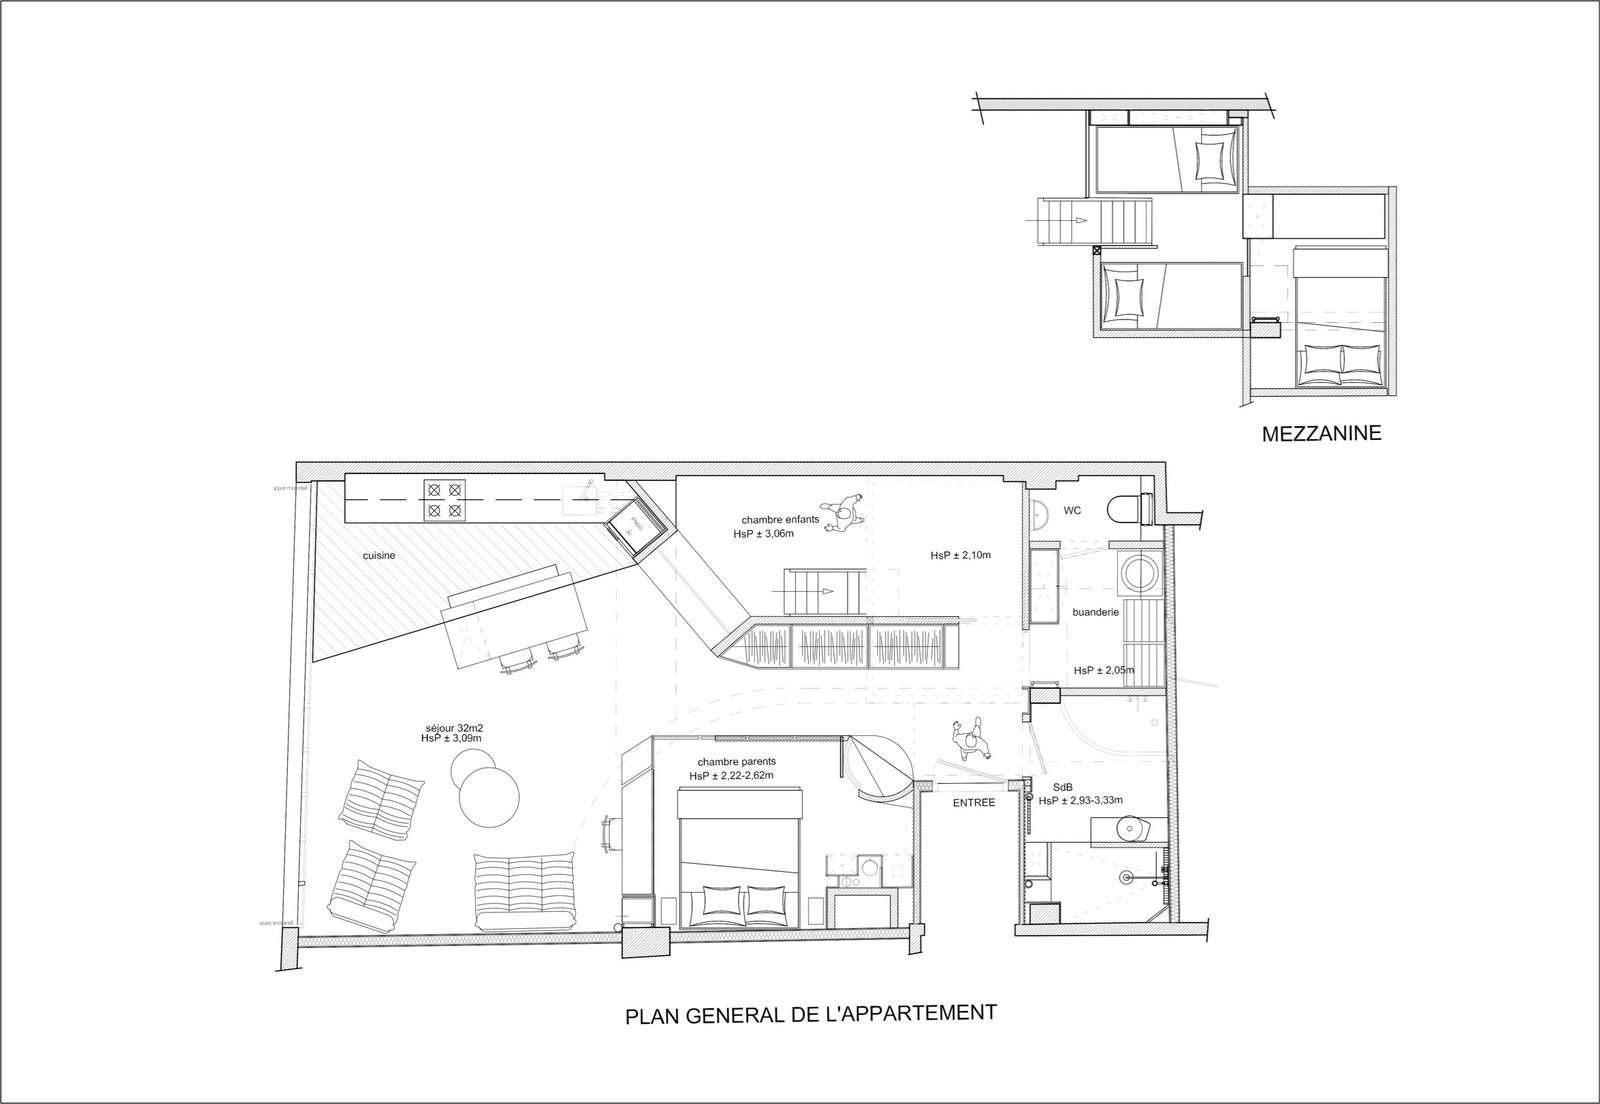 Floor plan for the new apartment.